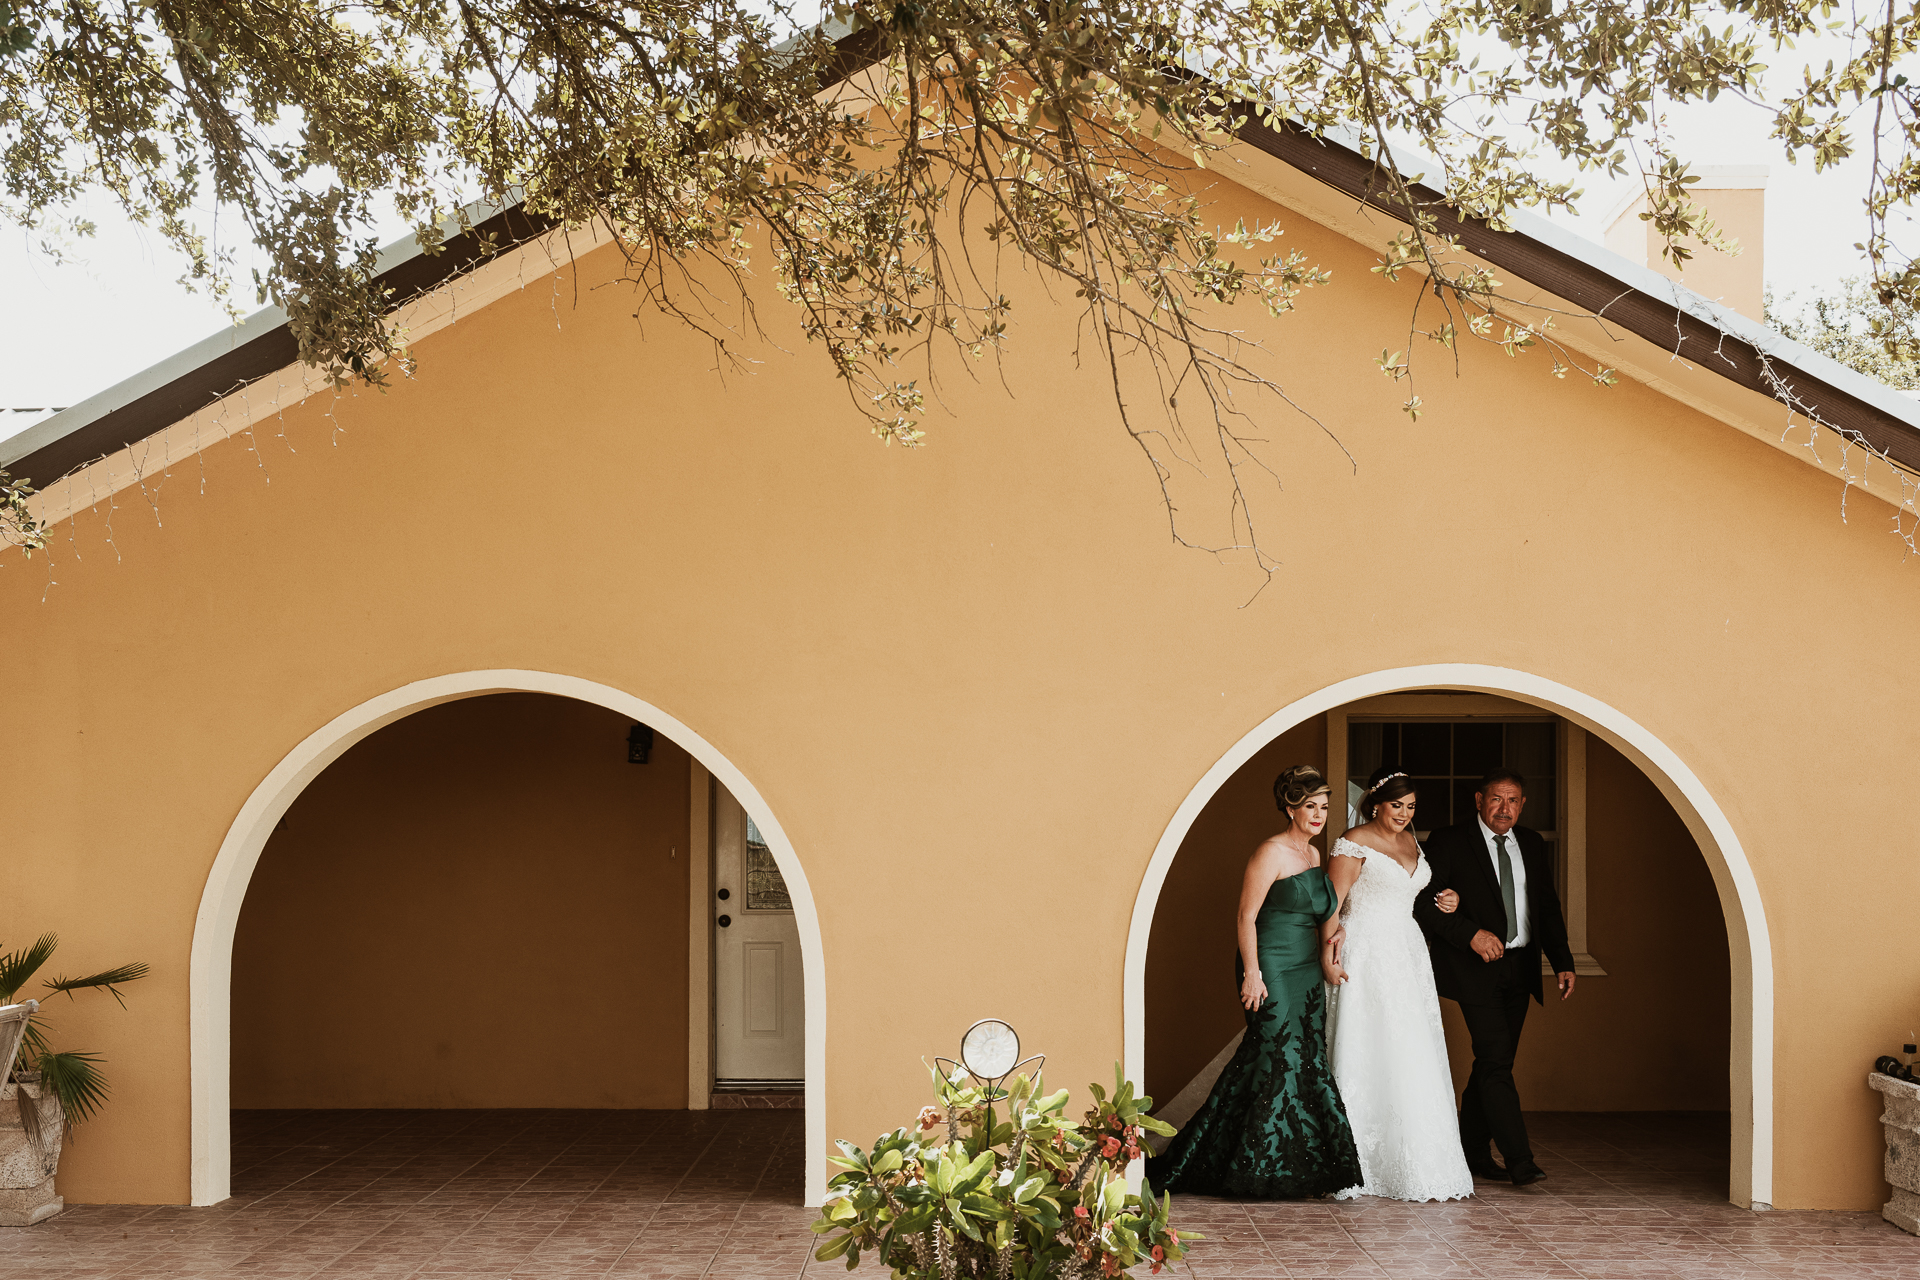 Bride and parents under architectural arch- photo by Philip Thomas Photography